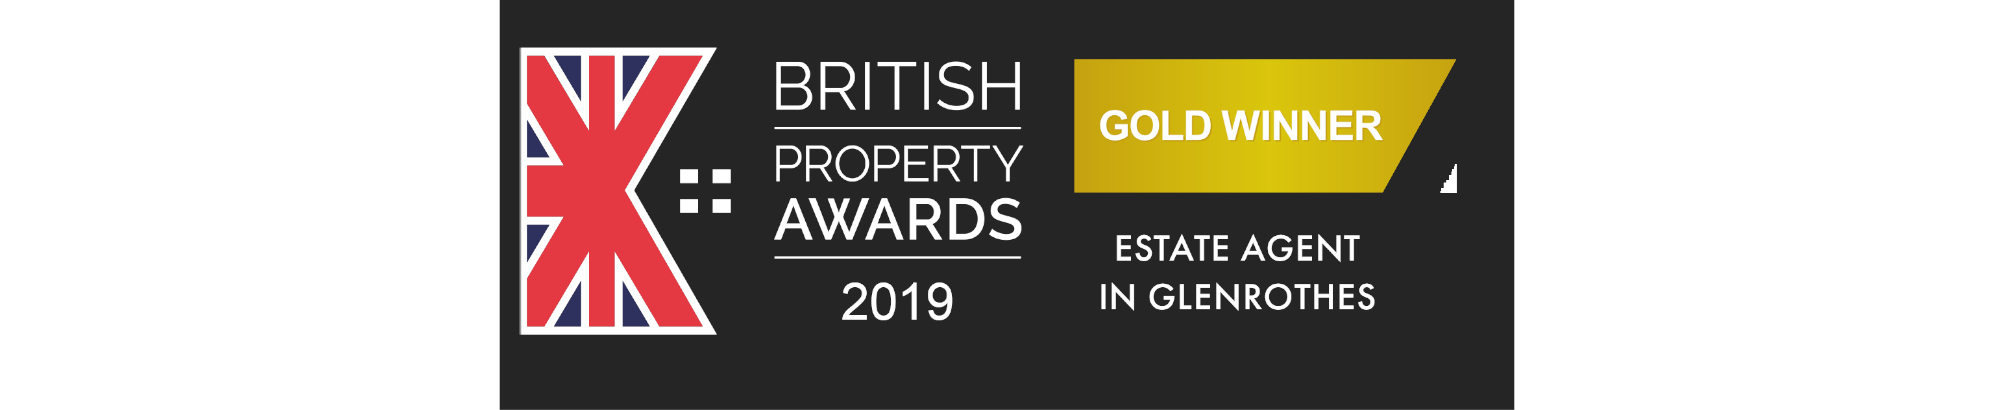 2019 British Property Awards Gold Winner